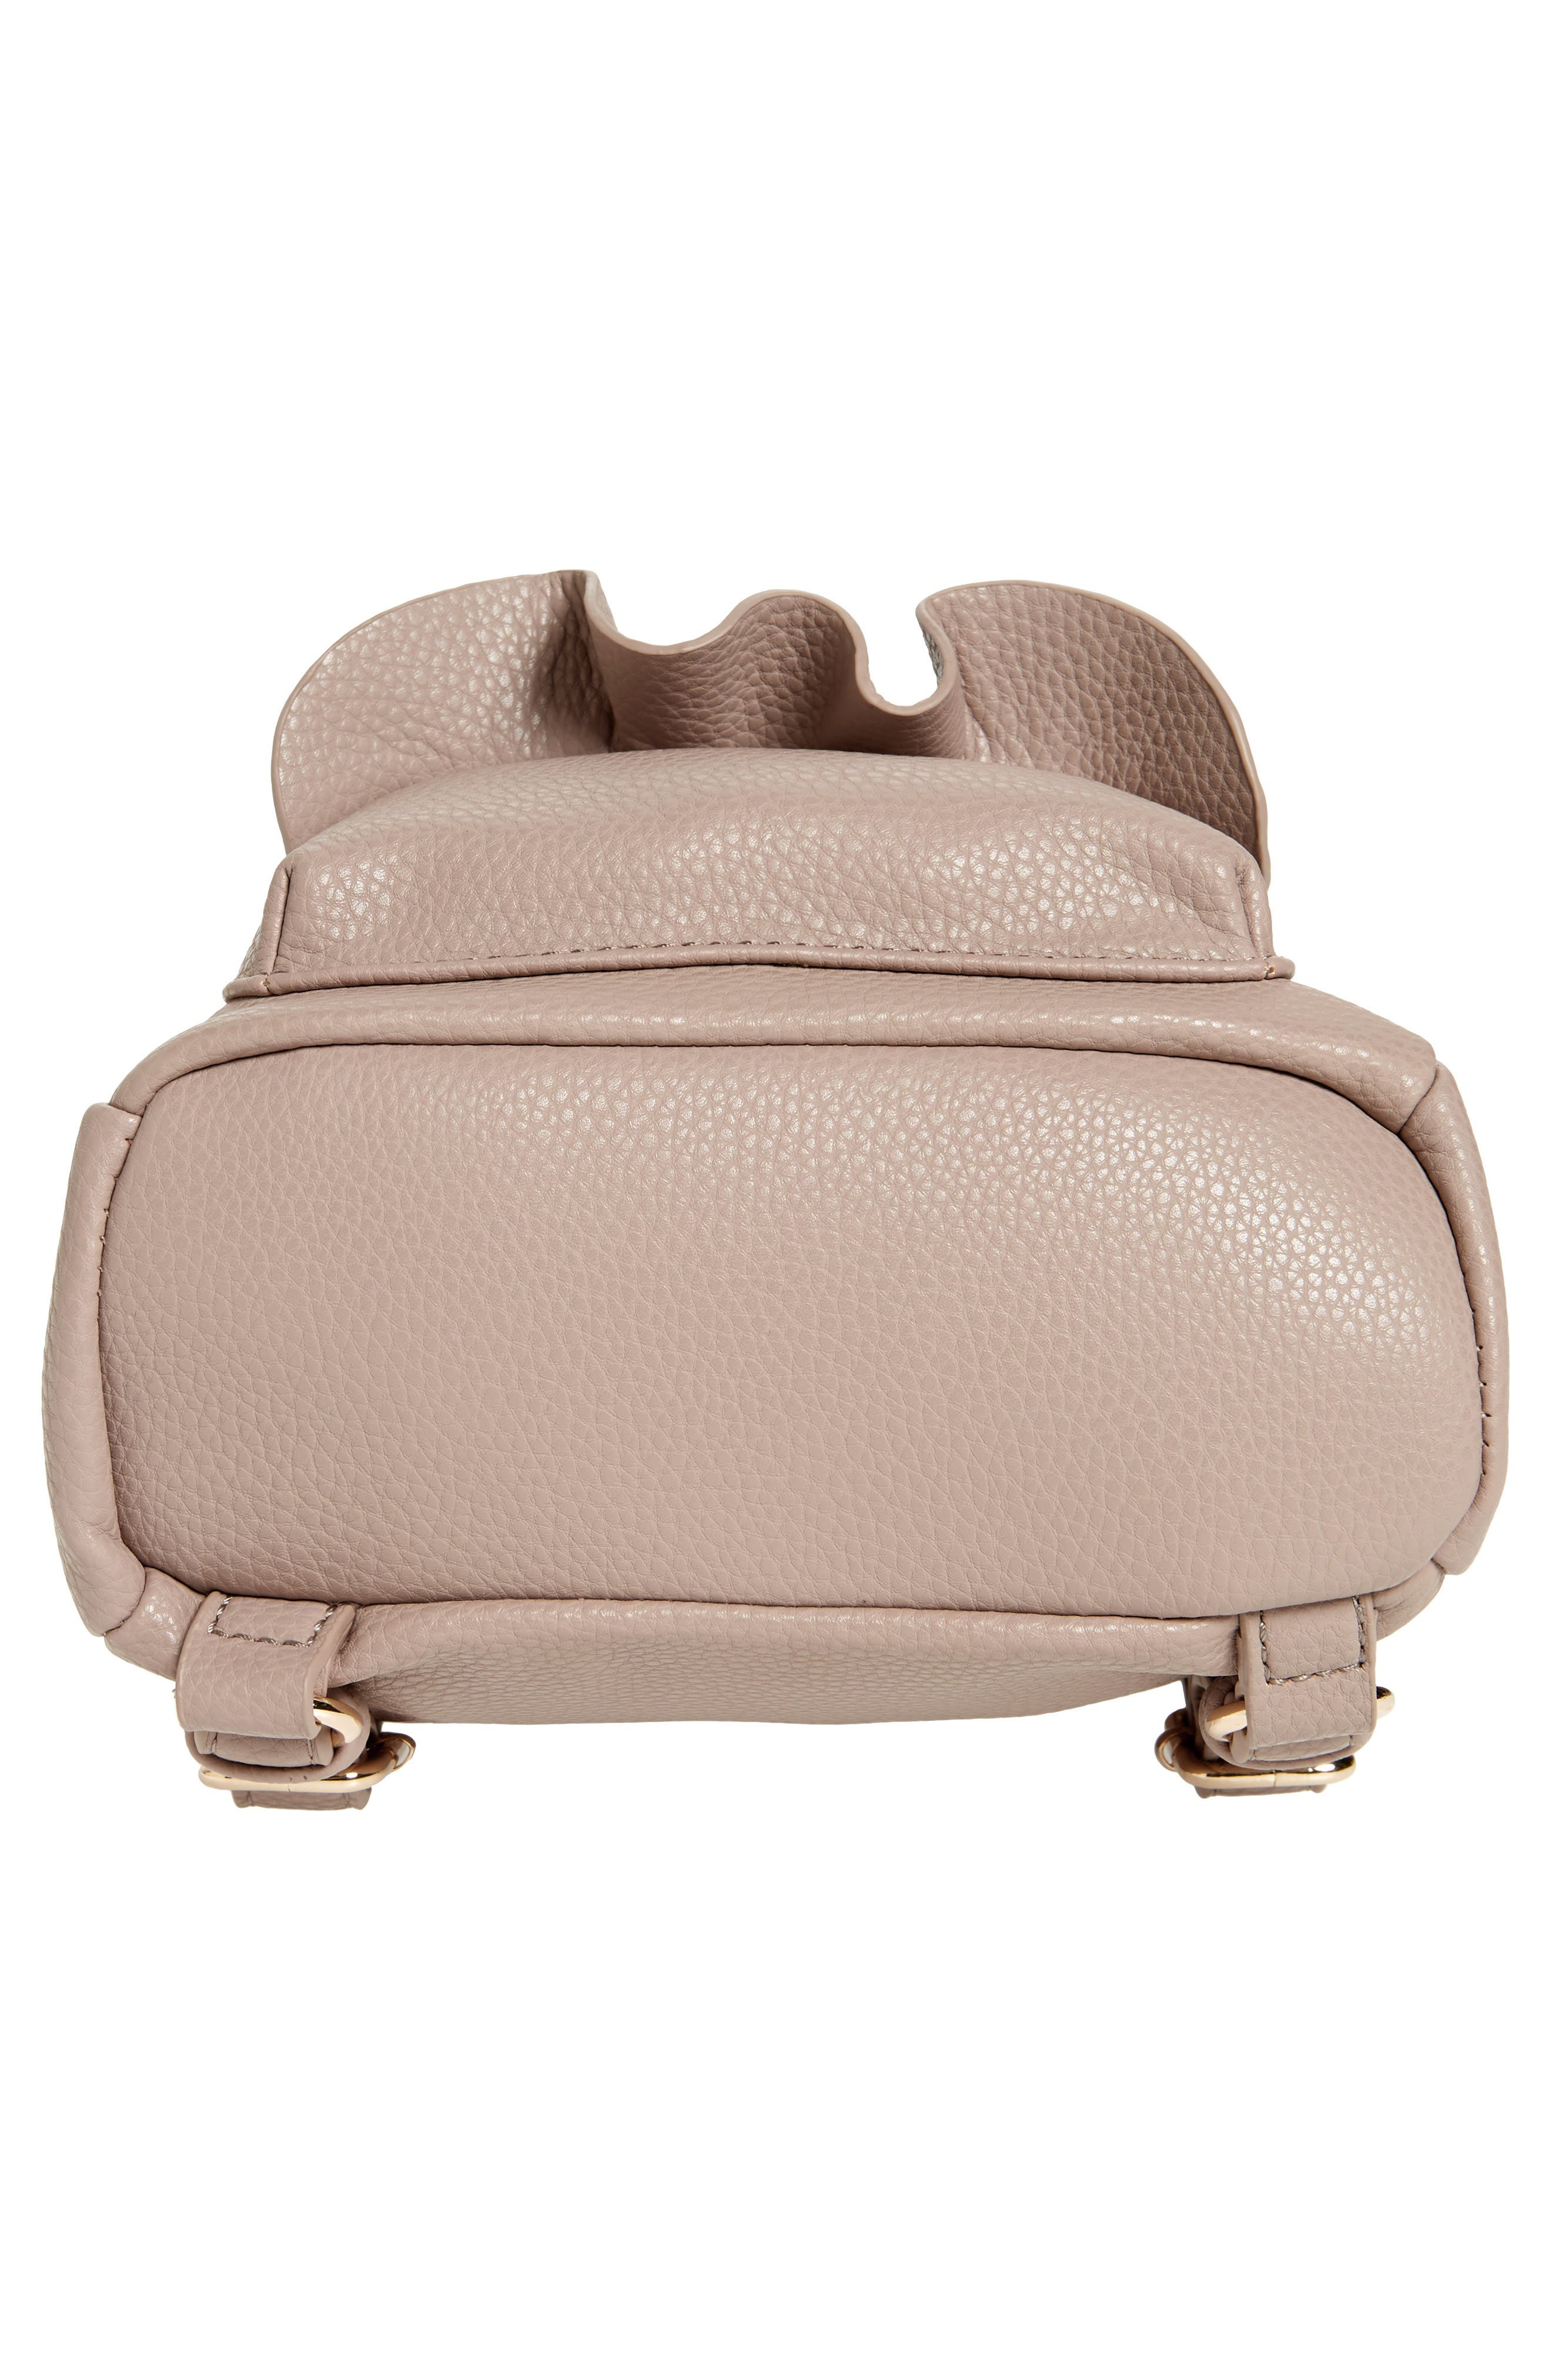 Tracie Mini Faux Leather Backpack,                             Alternate thumbnail 6, color,                             250